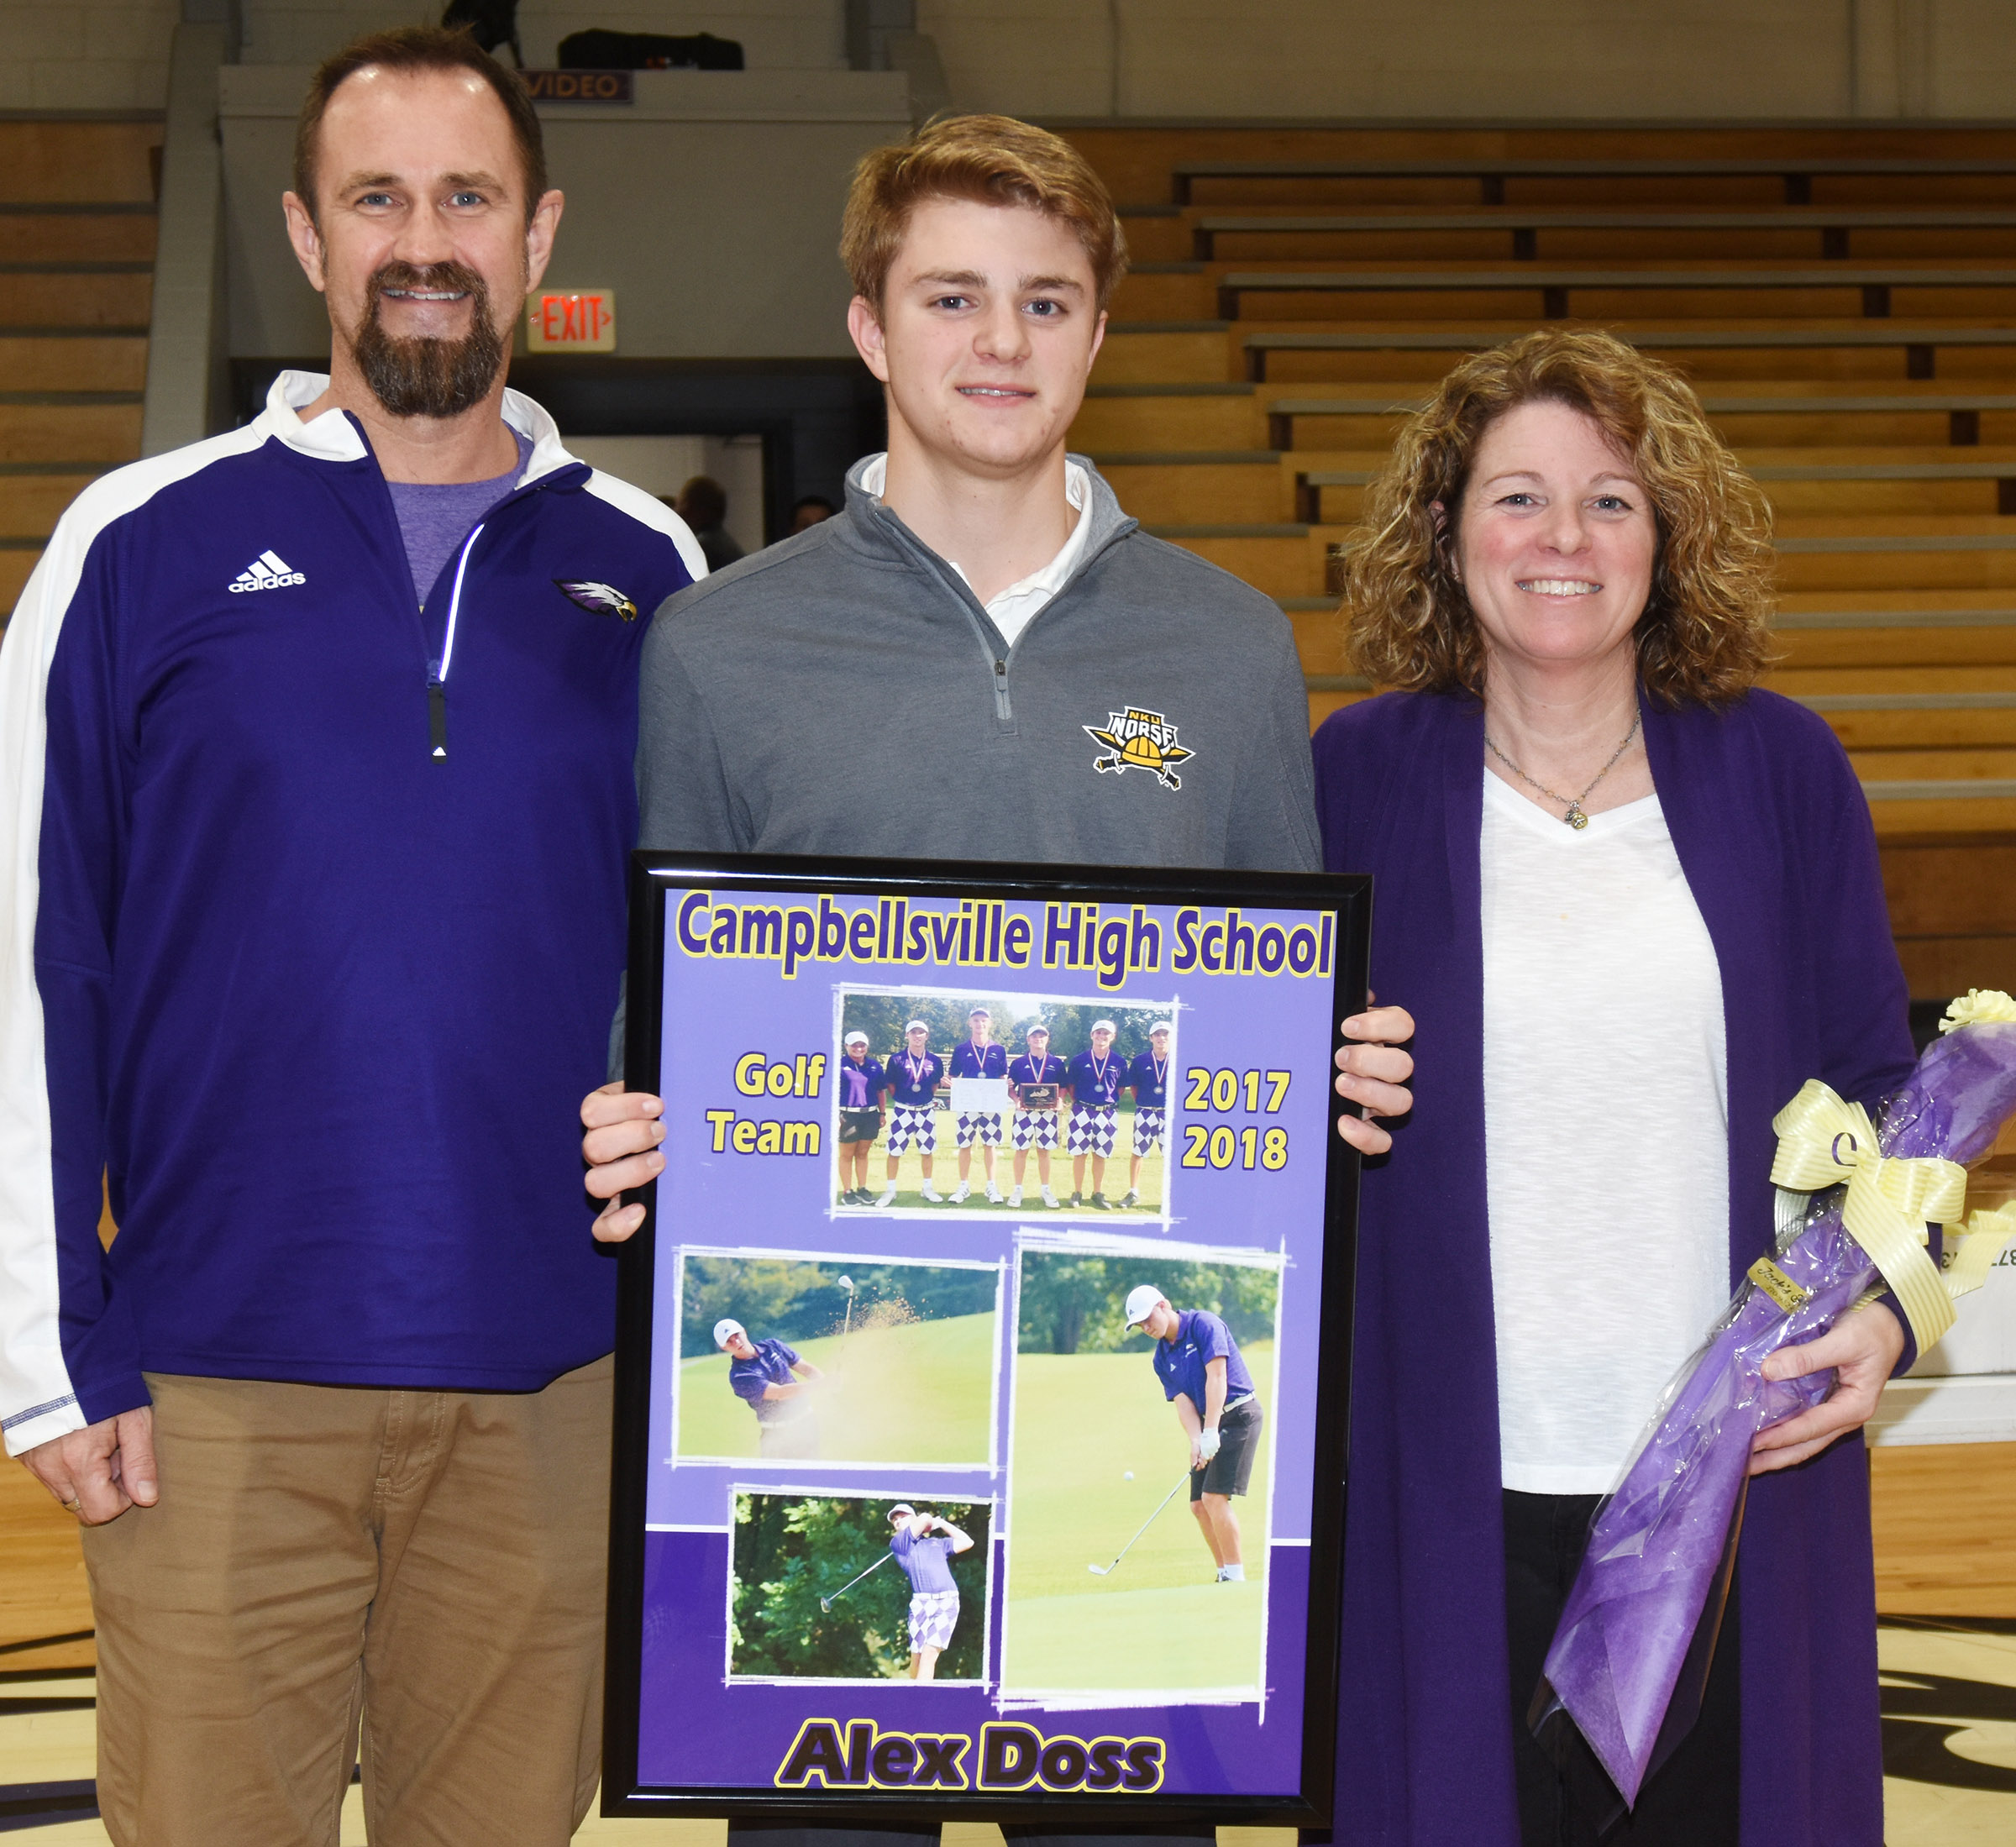 CHS senior golf player Alex Doss is honored. He is pictured with his parents, Steve and Dee Doss.